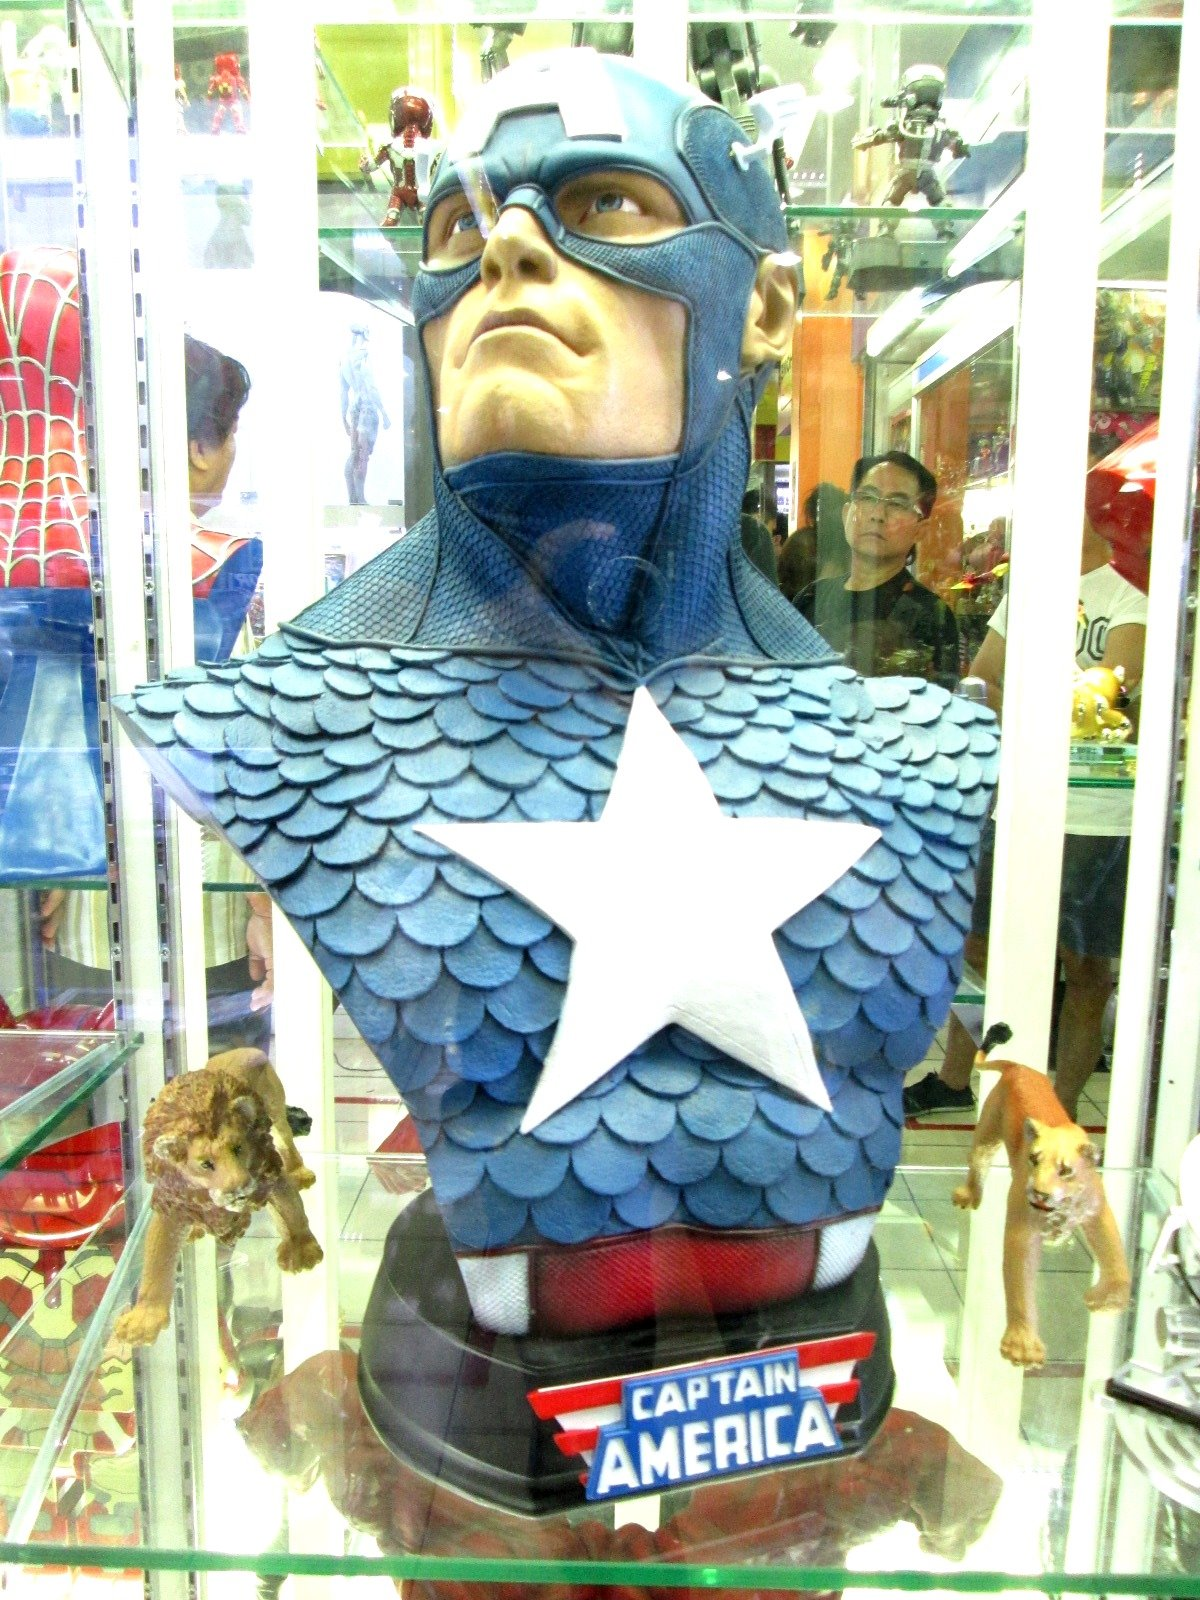 Captian America Bust Replica 1:1 Custom Painted By Goodwill Shop by Goodwill Shop